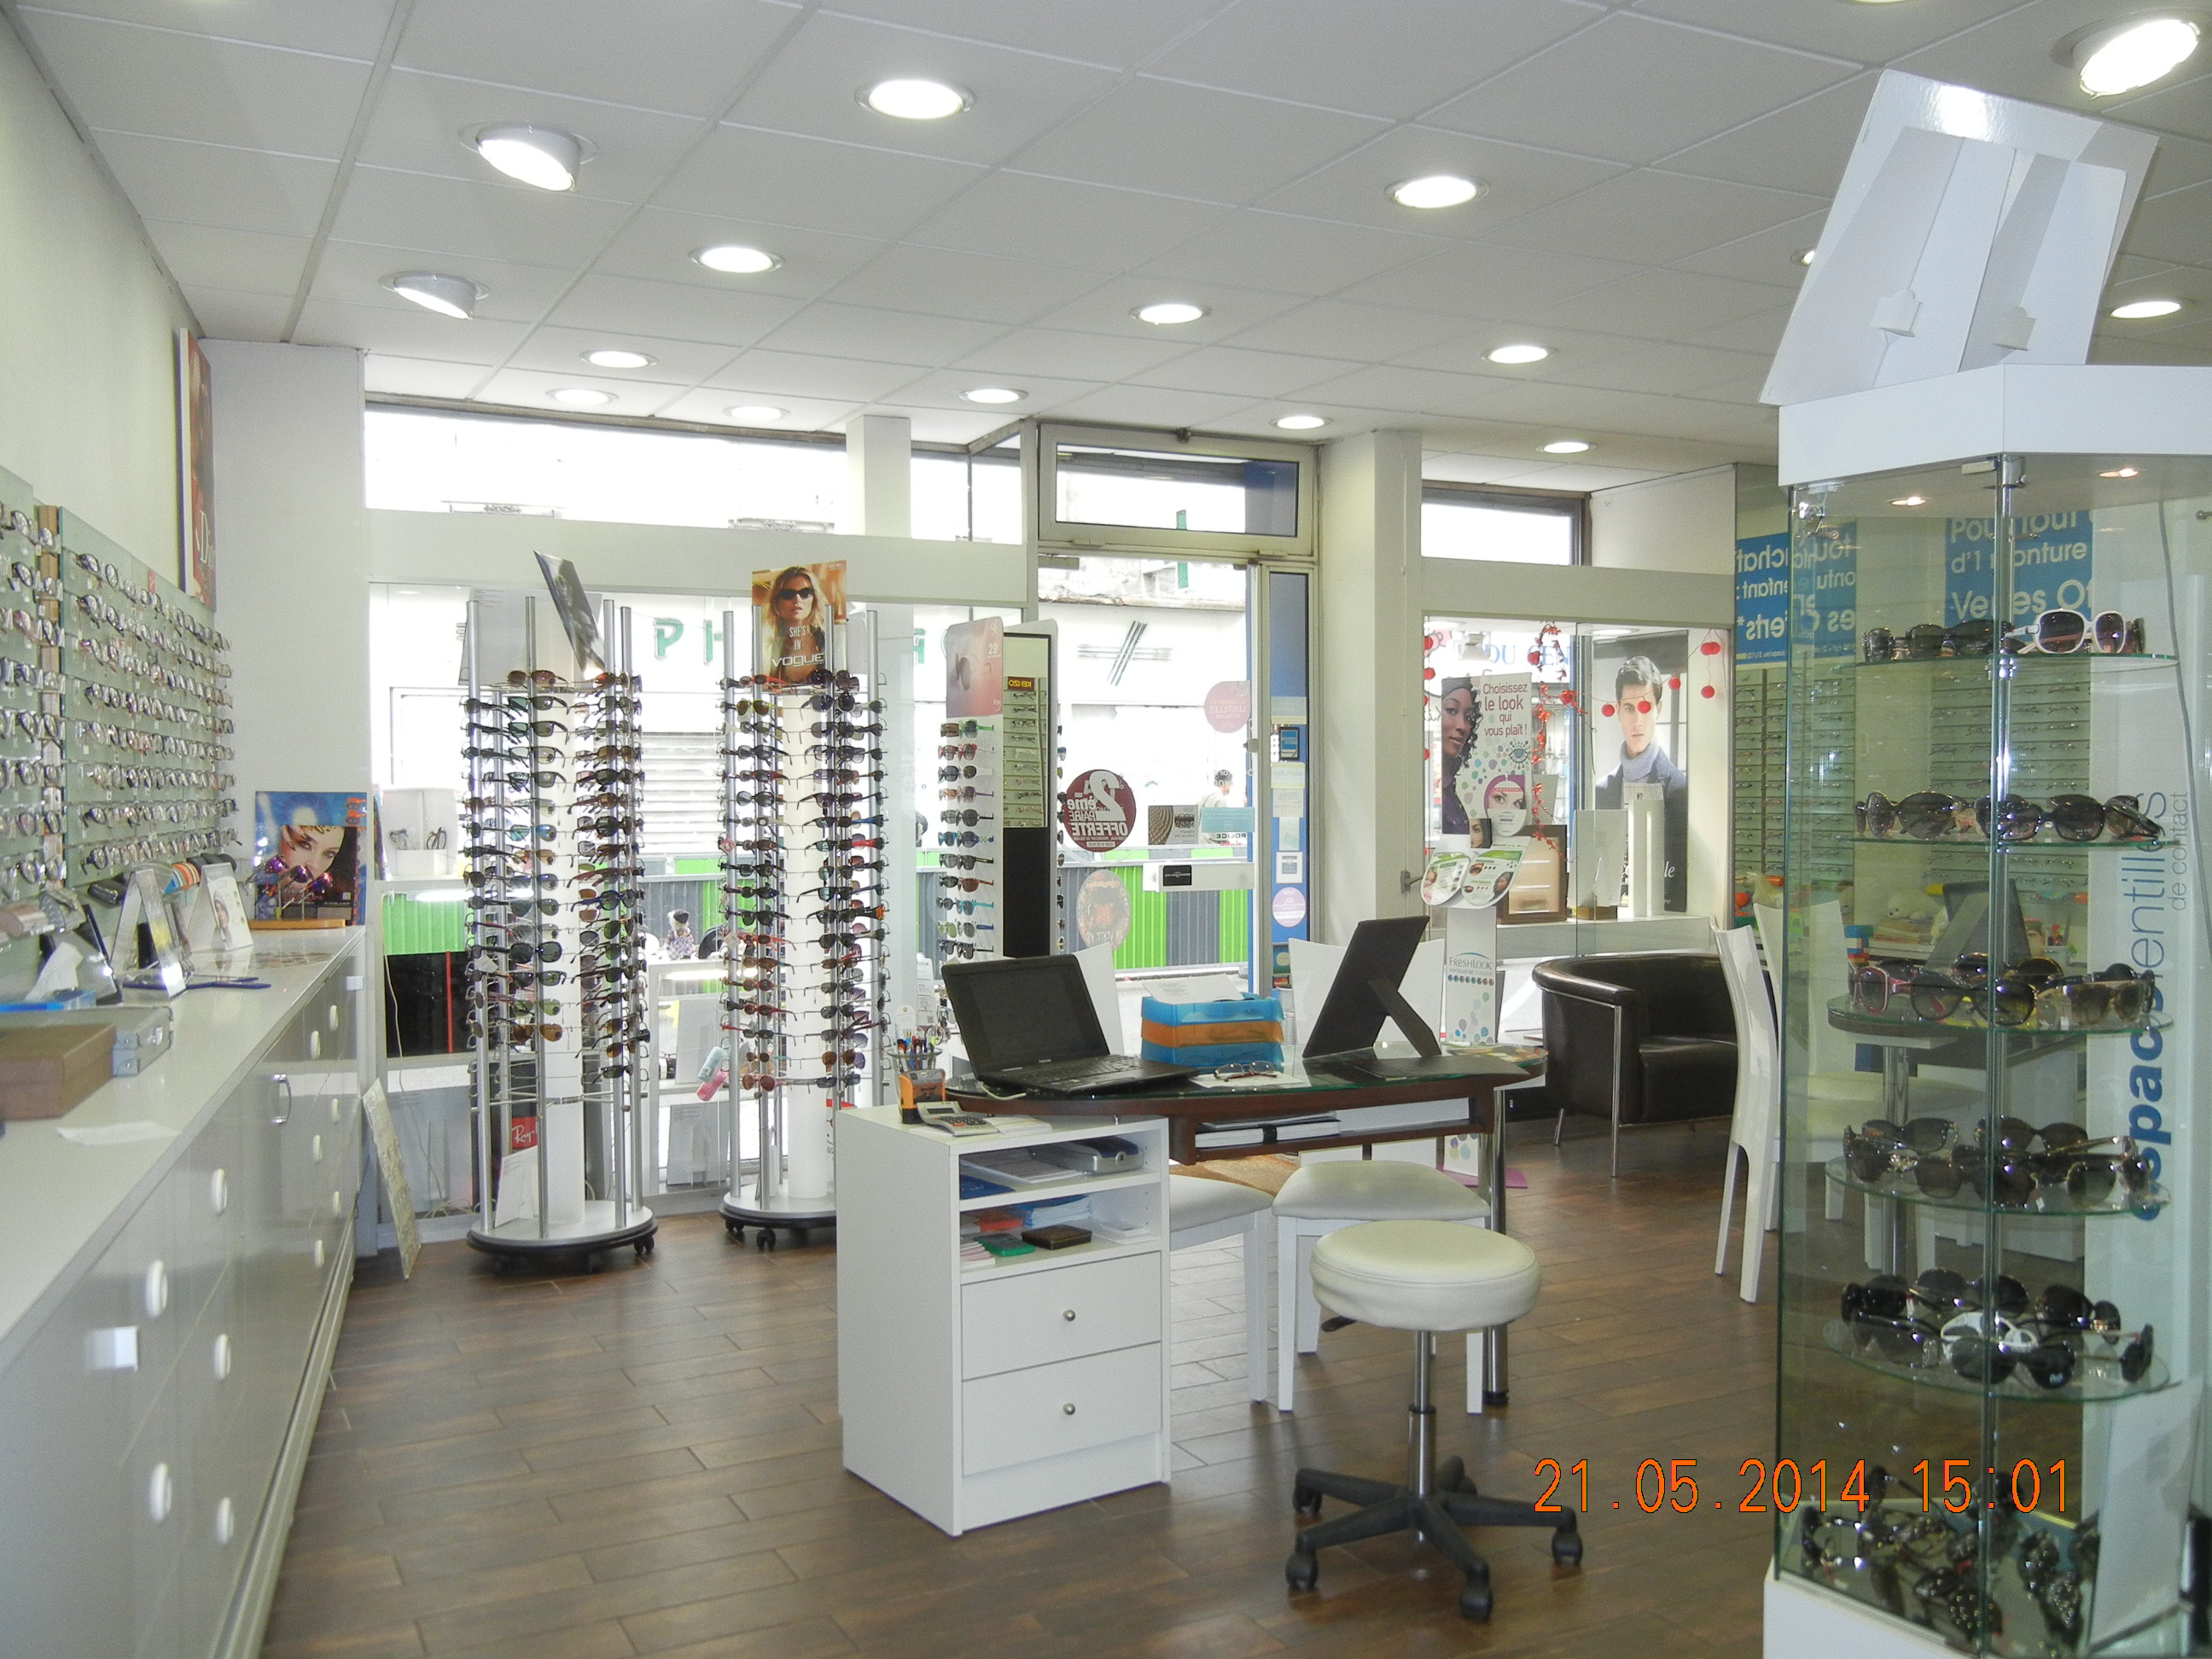 Opticien : OPTIQUE PROST, 86 RUE GABRIEL PERI, 93200 SAINT DENIS